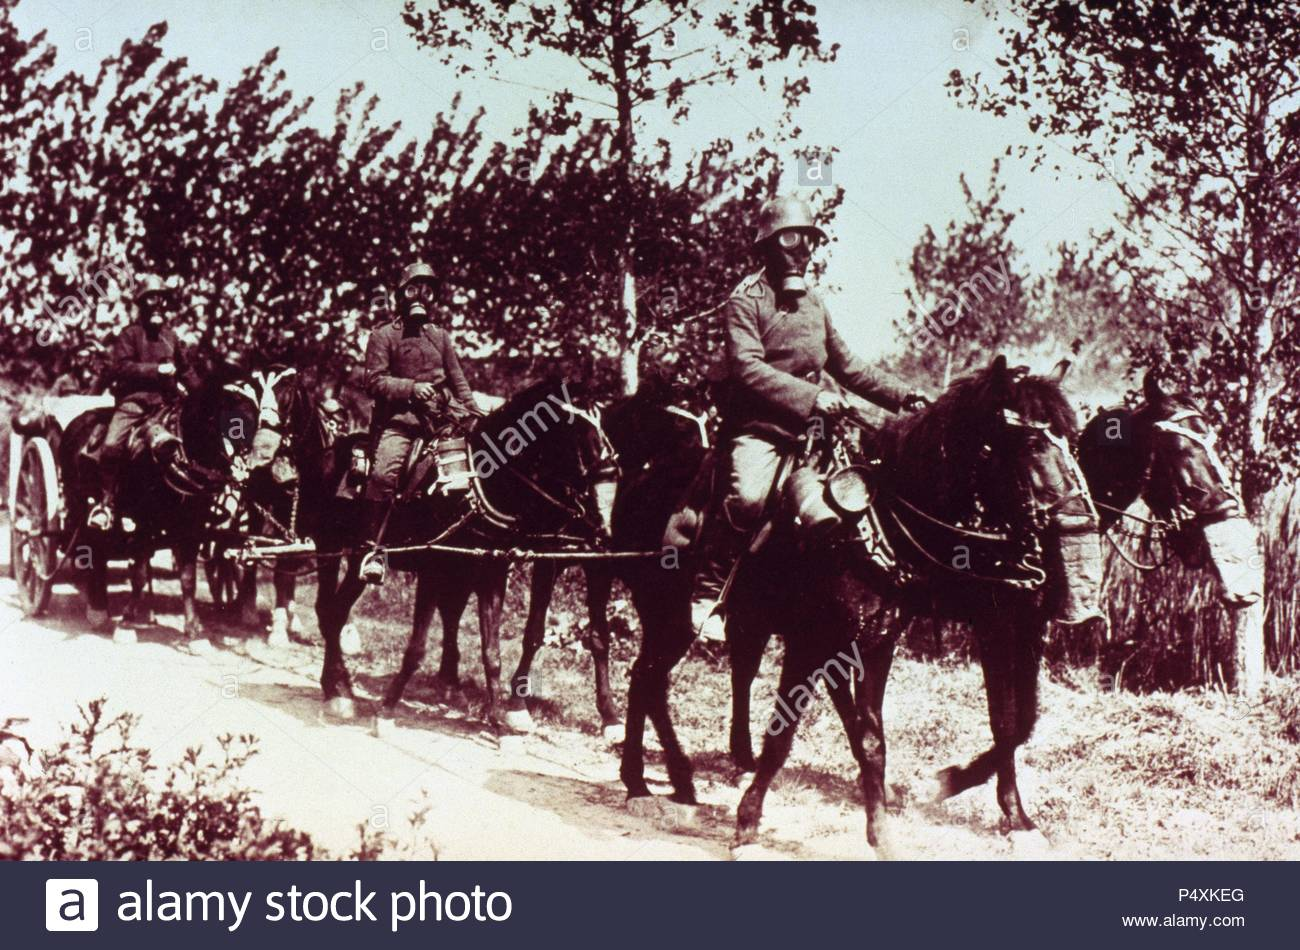 WORLD WAR (1914-1918).  Soldiers and horses of the German army, both with gas masks to protect against poison gas launched by the enemy. - Stock Image